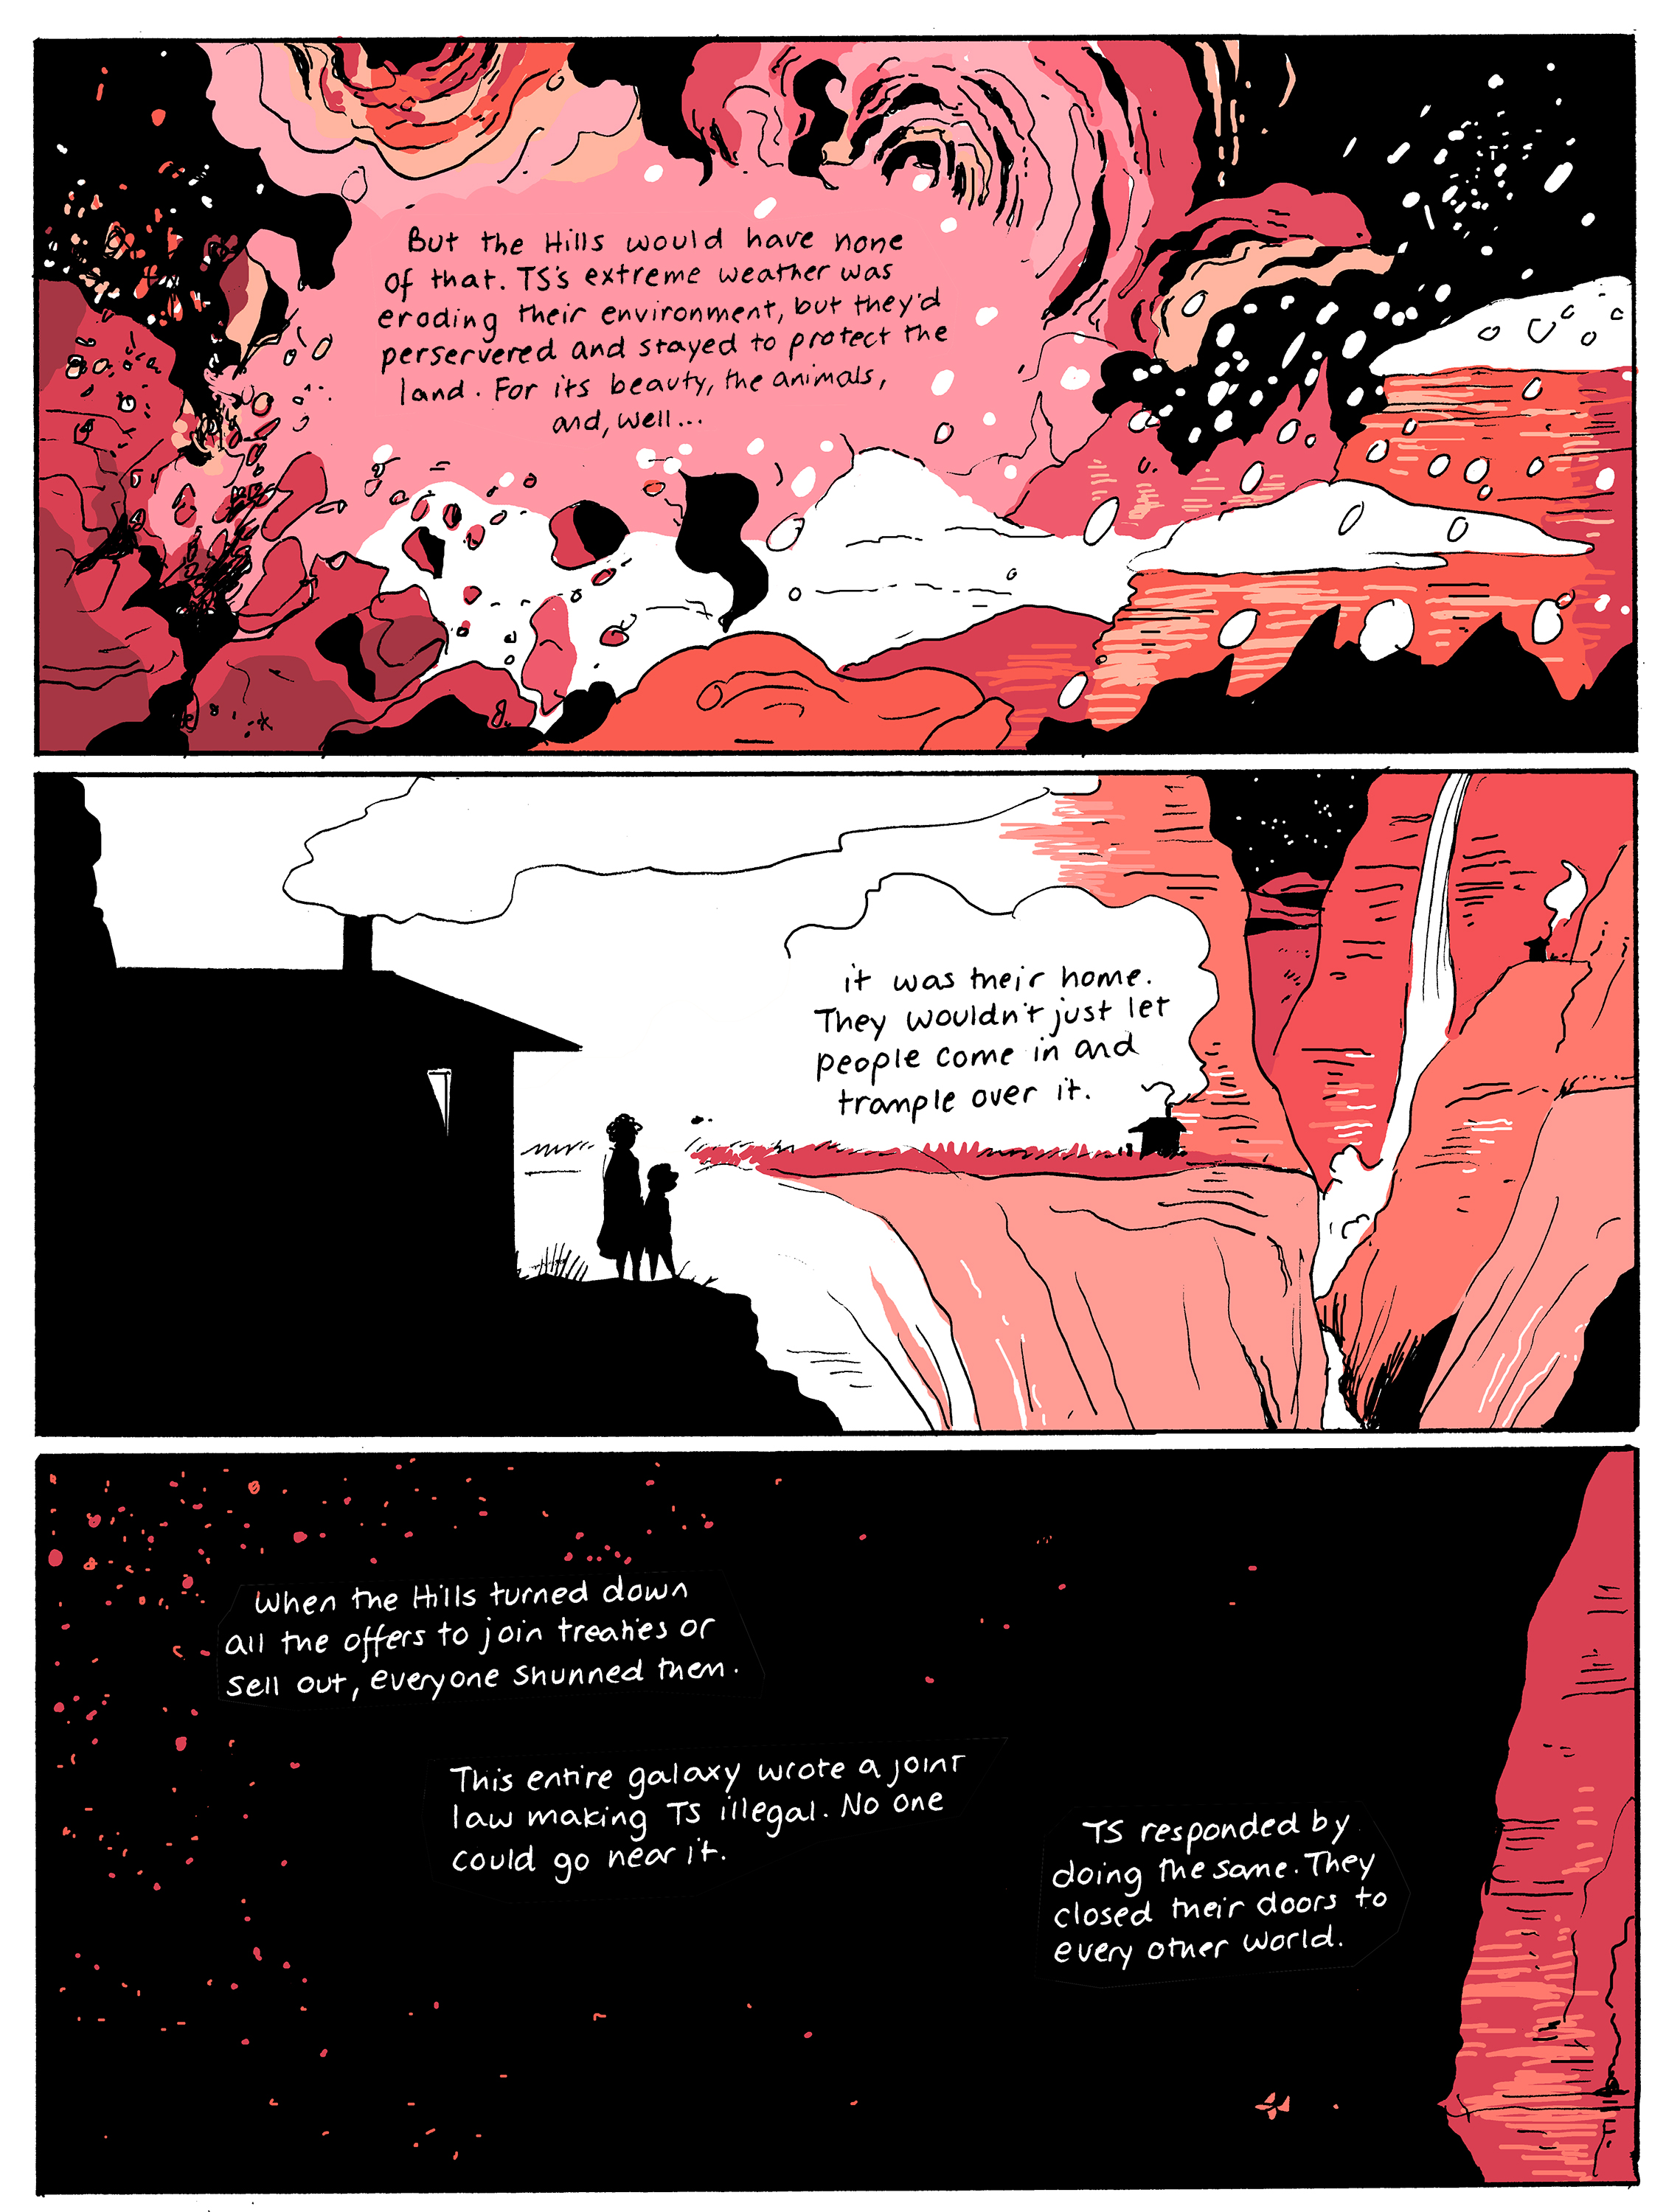 chapter14_page09.jpg